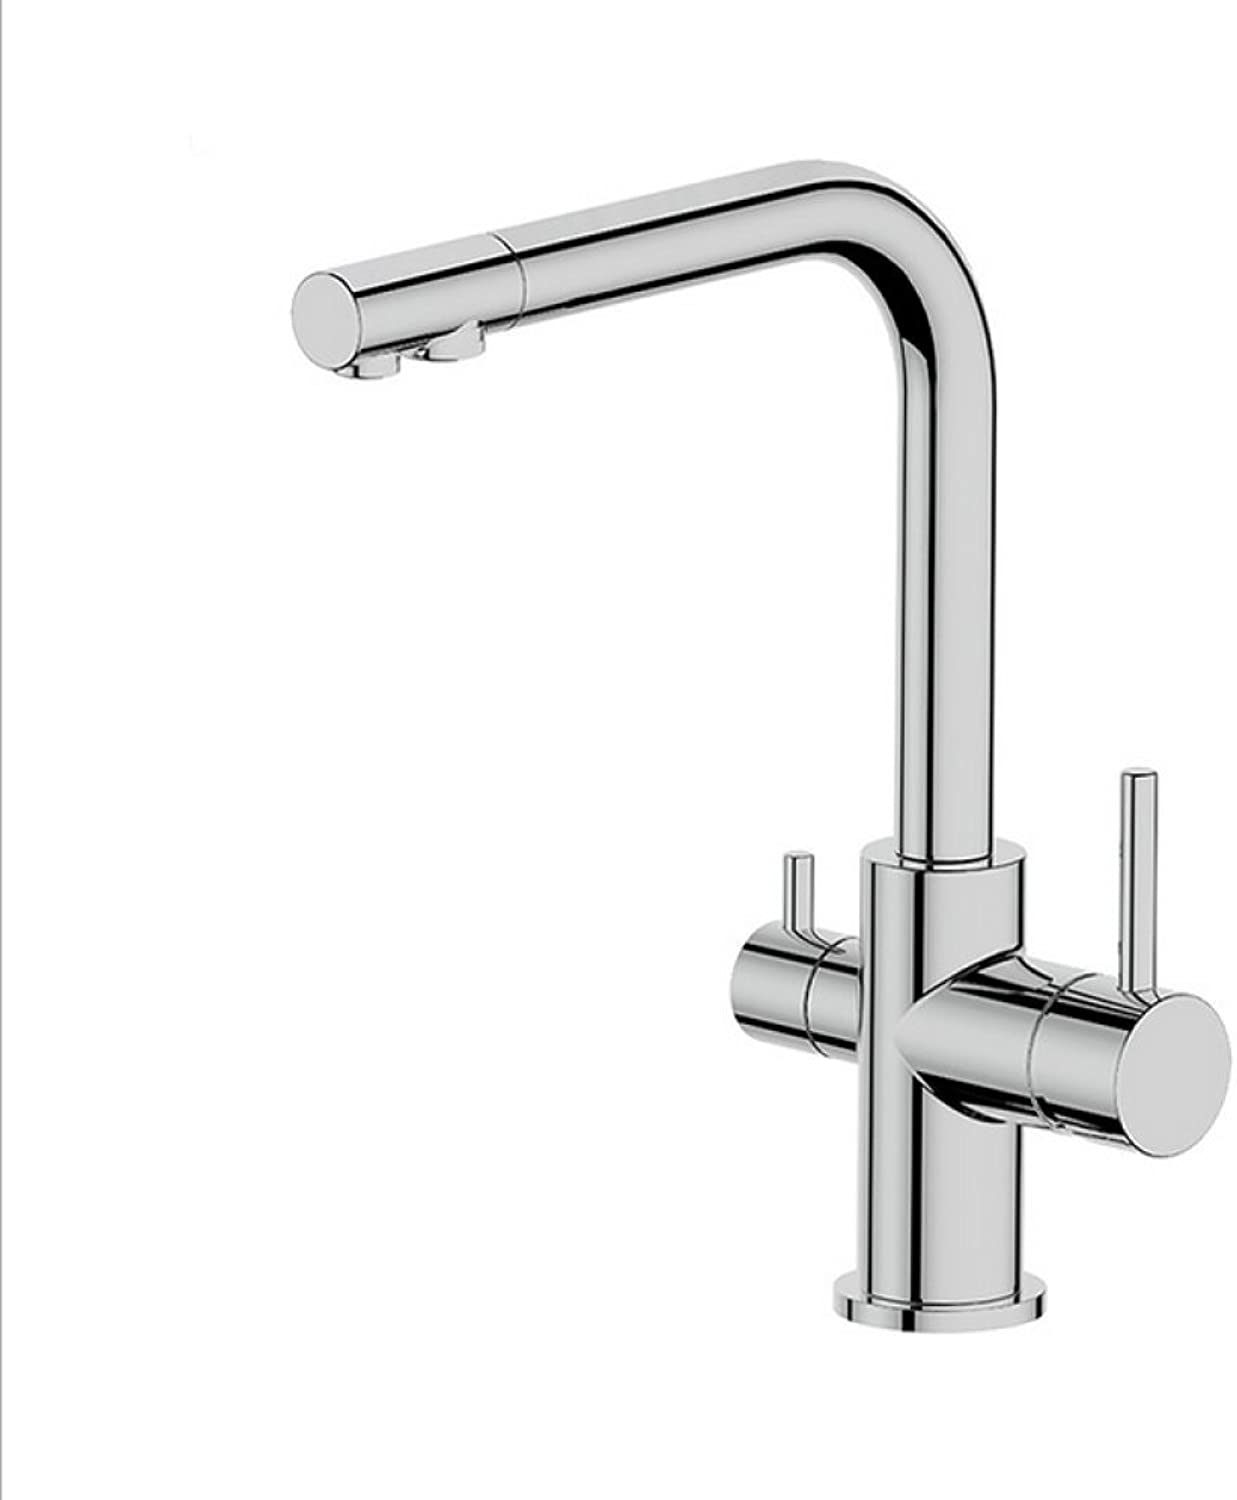 HH faucet new kitchen faucet low lead basin faucet copper single-link environmental faucet mixing faucet bathroom suite